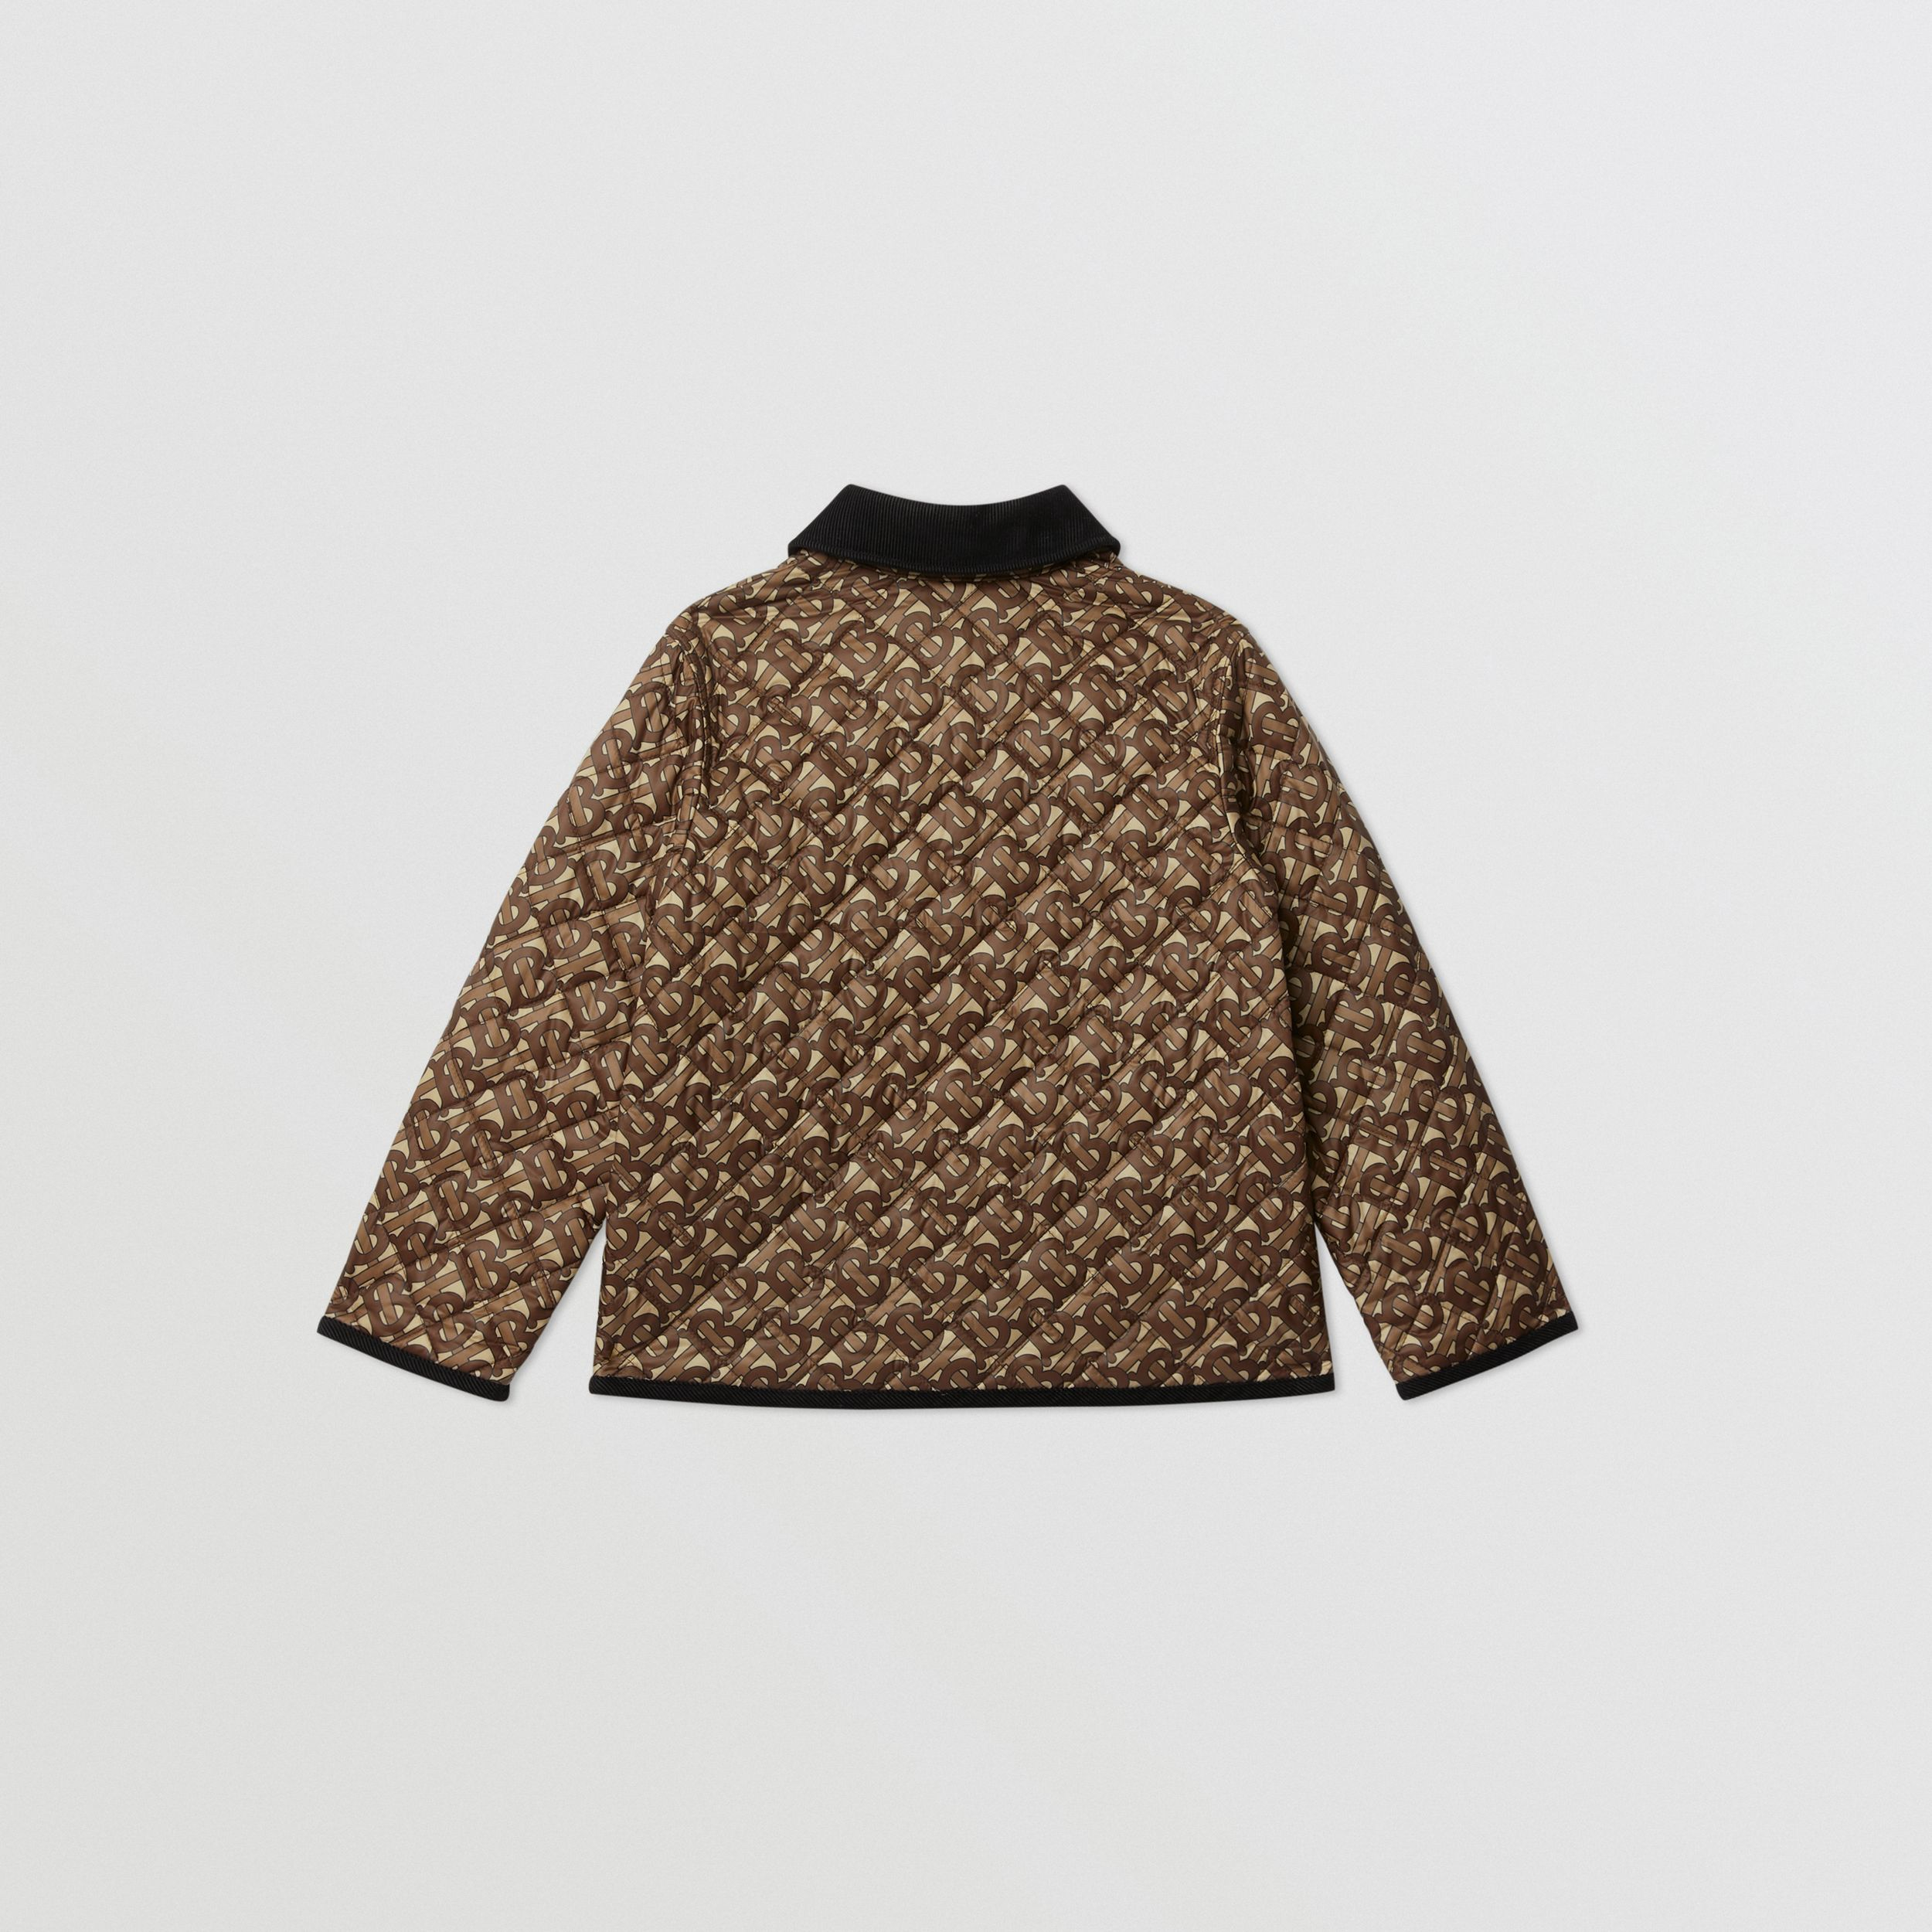 Monogram Print Diamond Quilted Jacket in Bridle Brown | Burberry United States - 4